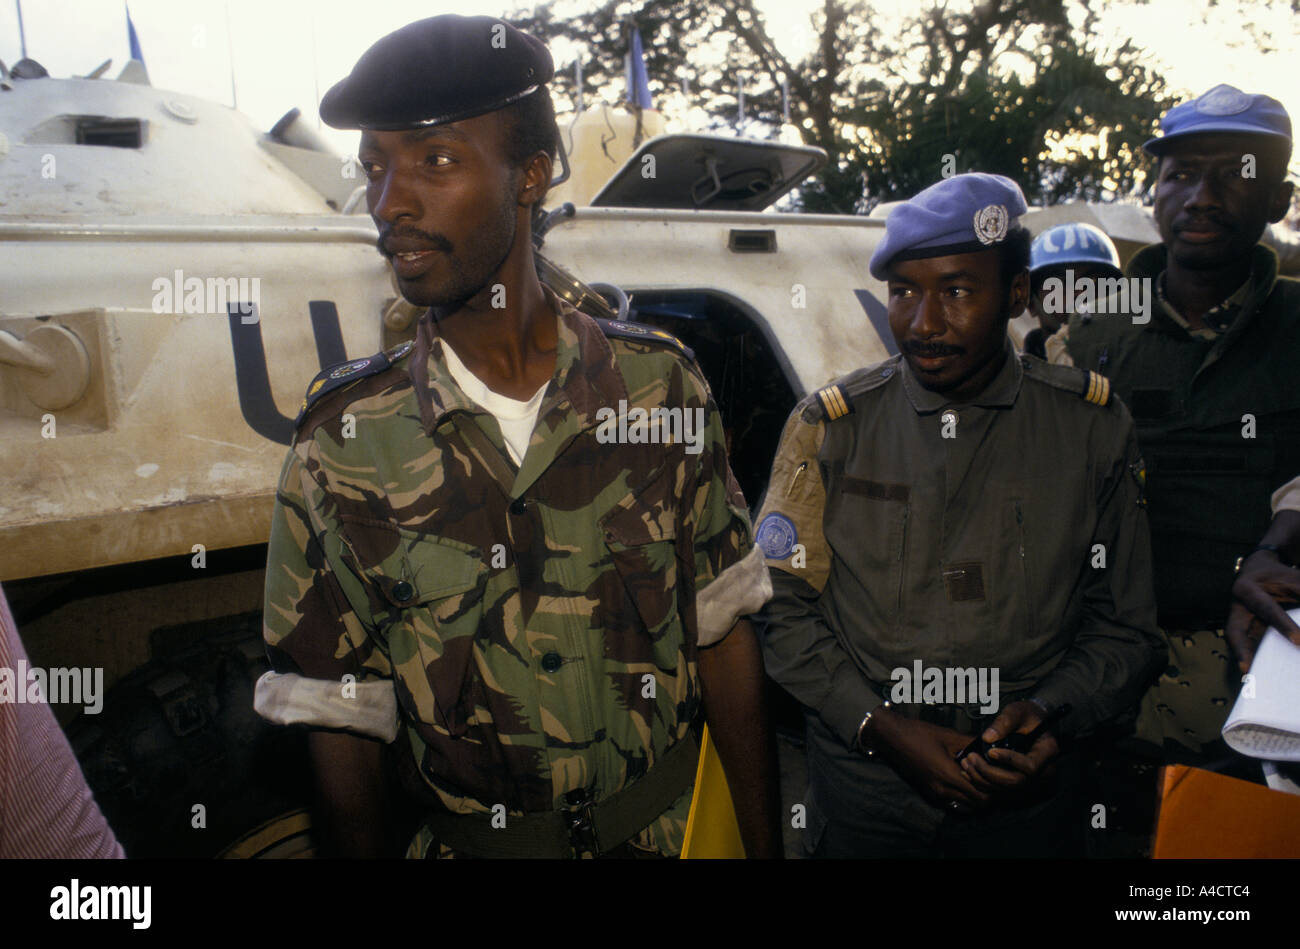 rwandan civil war The rwandan civil conflict can be  home this event marked the beginning of a three year civil war, and within days also signaled the start of regional mediation .